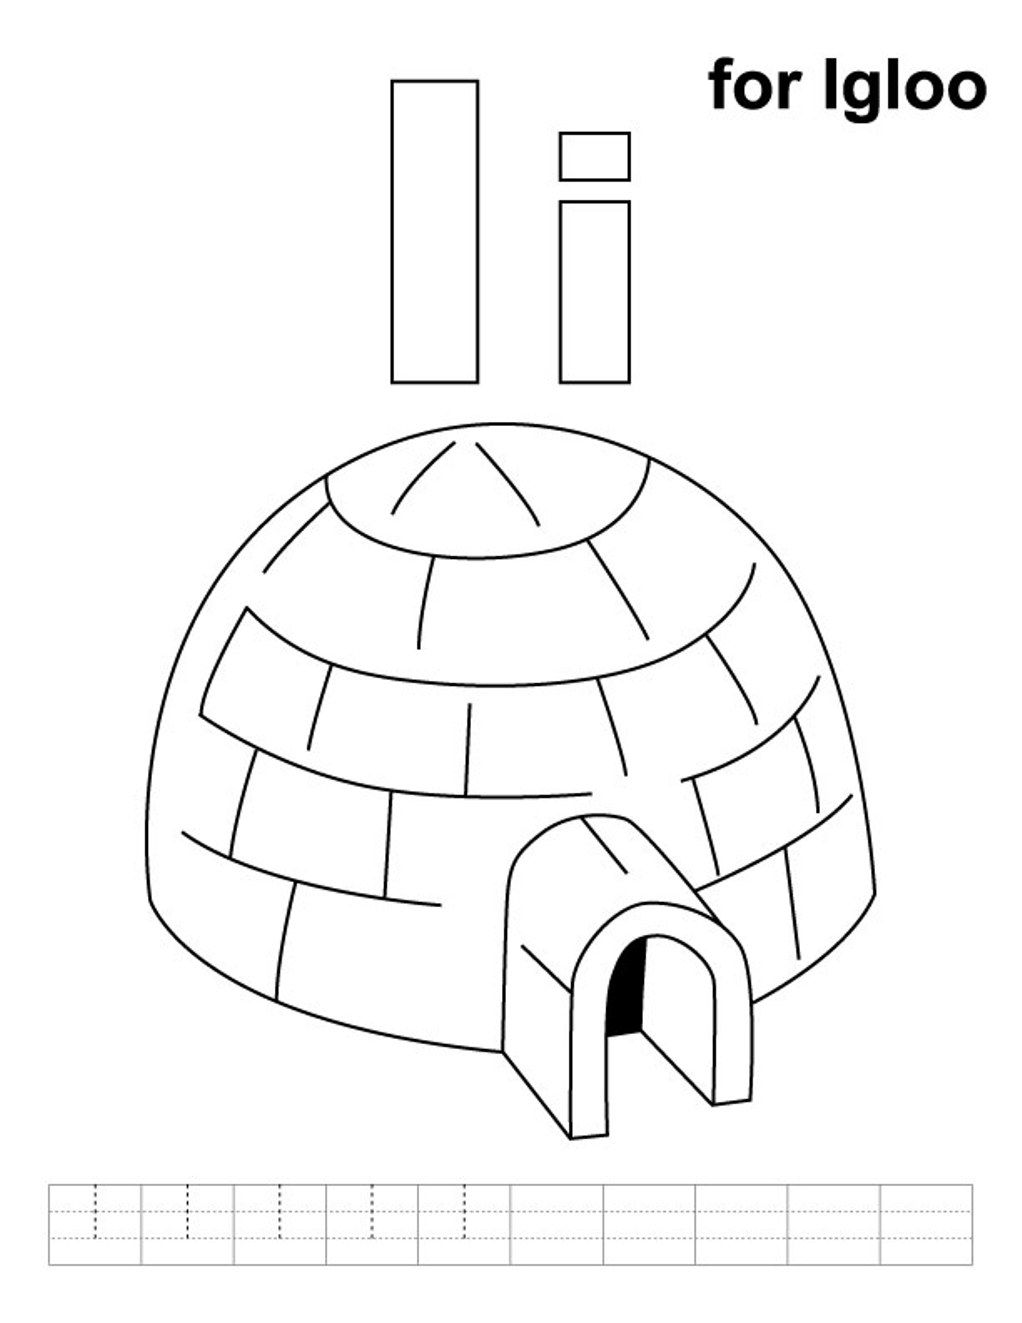 Alphabet coloring igloo coloring pages alphabet i igloo coloring alphabet coloring igloo coloring pages alphabet i igloo coloring pages pooptronica